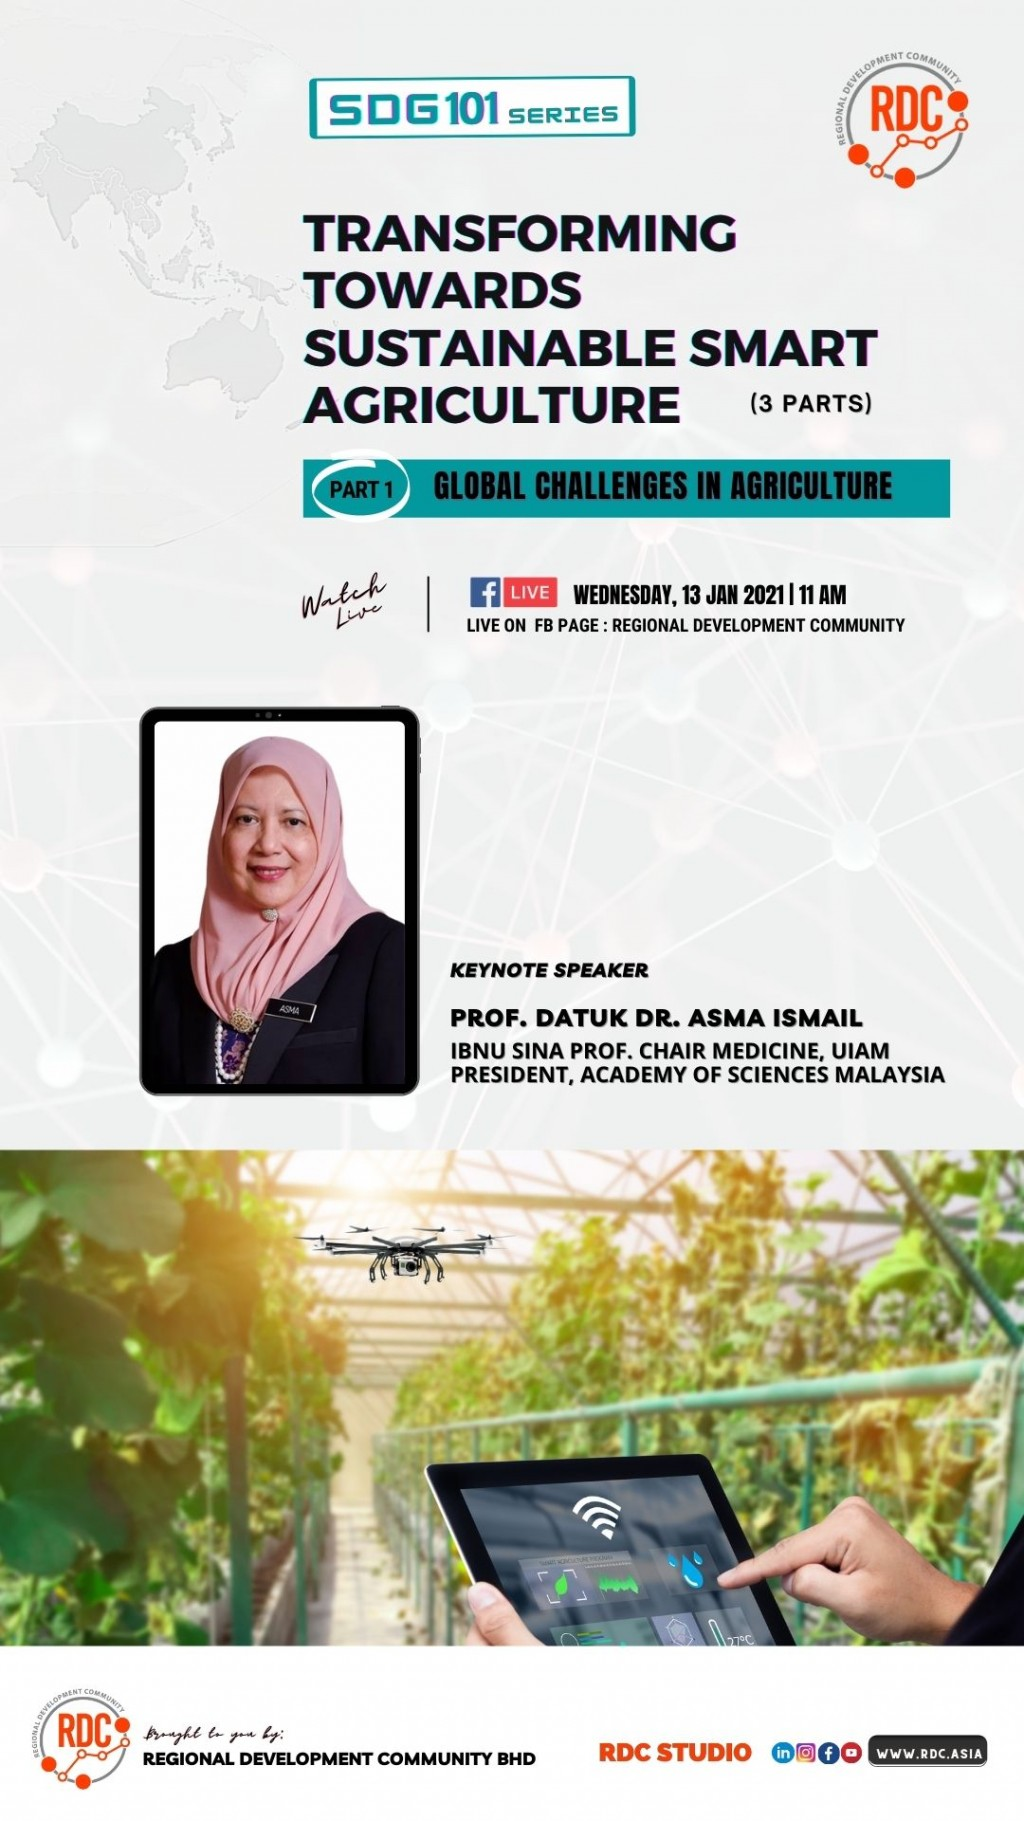 TRANSFORMING TOWARDS SUSTAINABLE SMART AGRICULTURE ( PART 1)